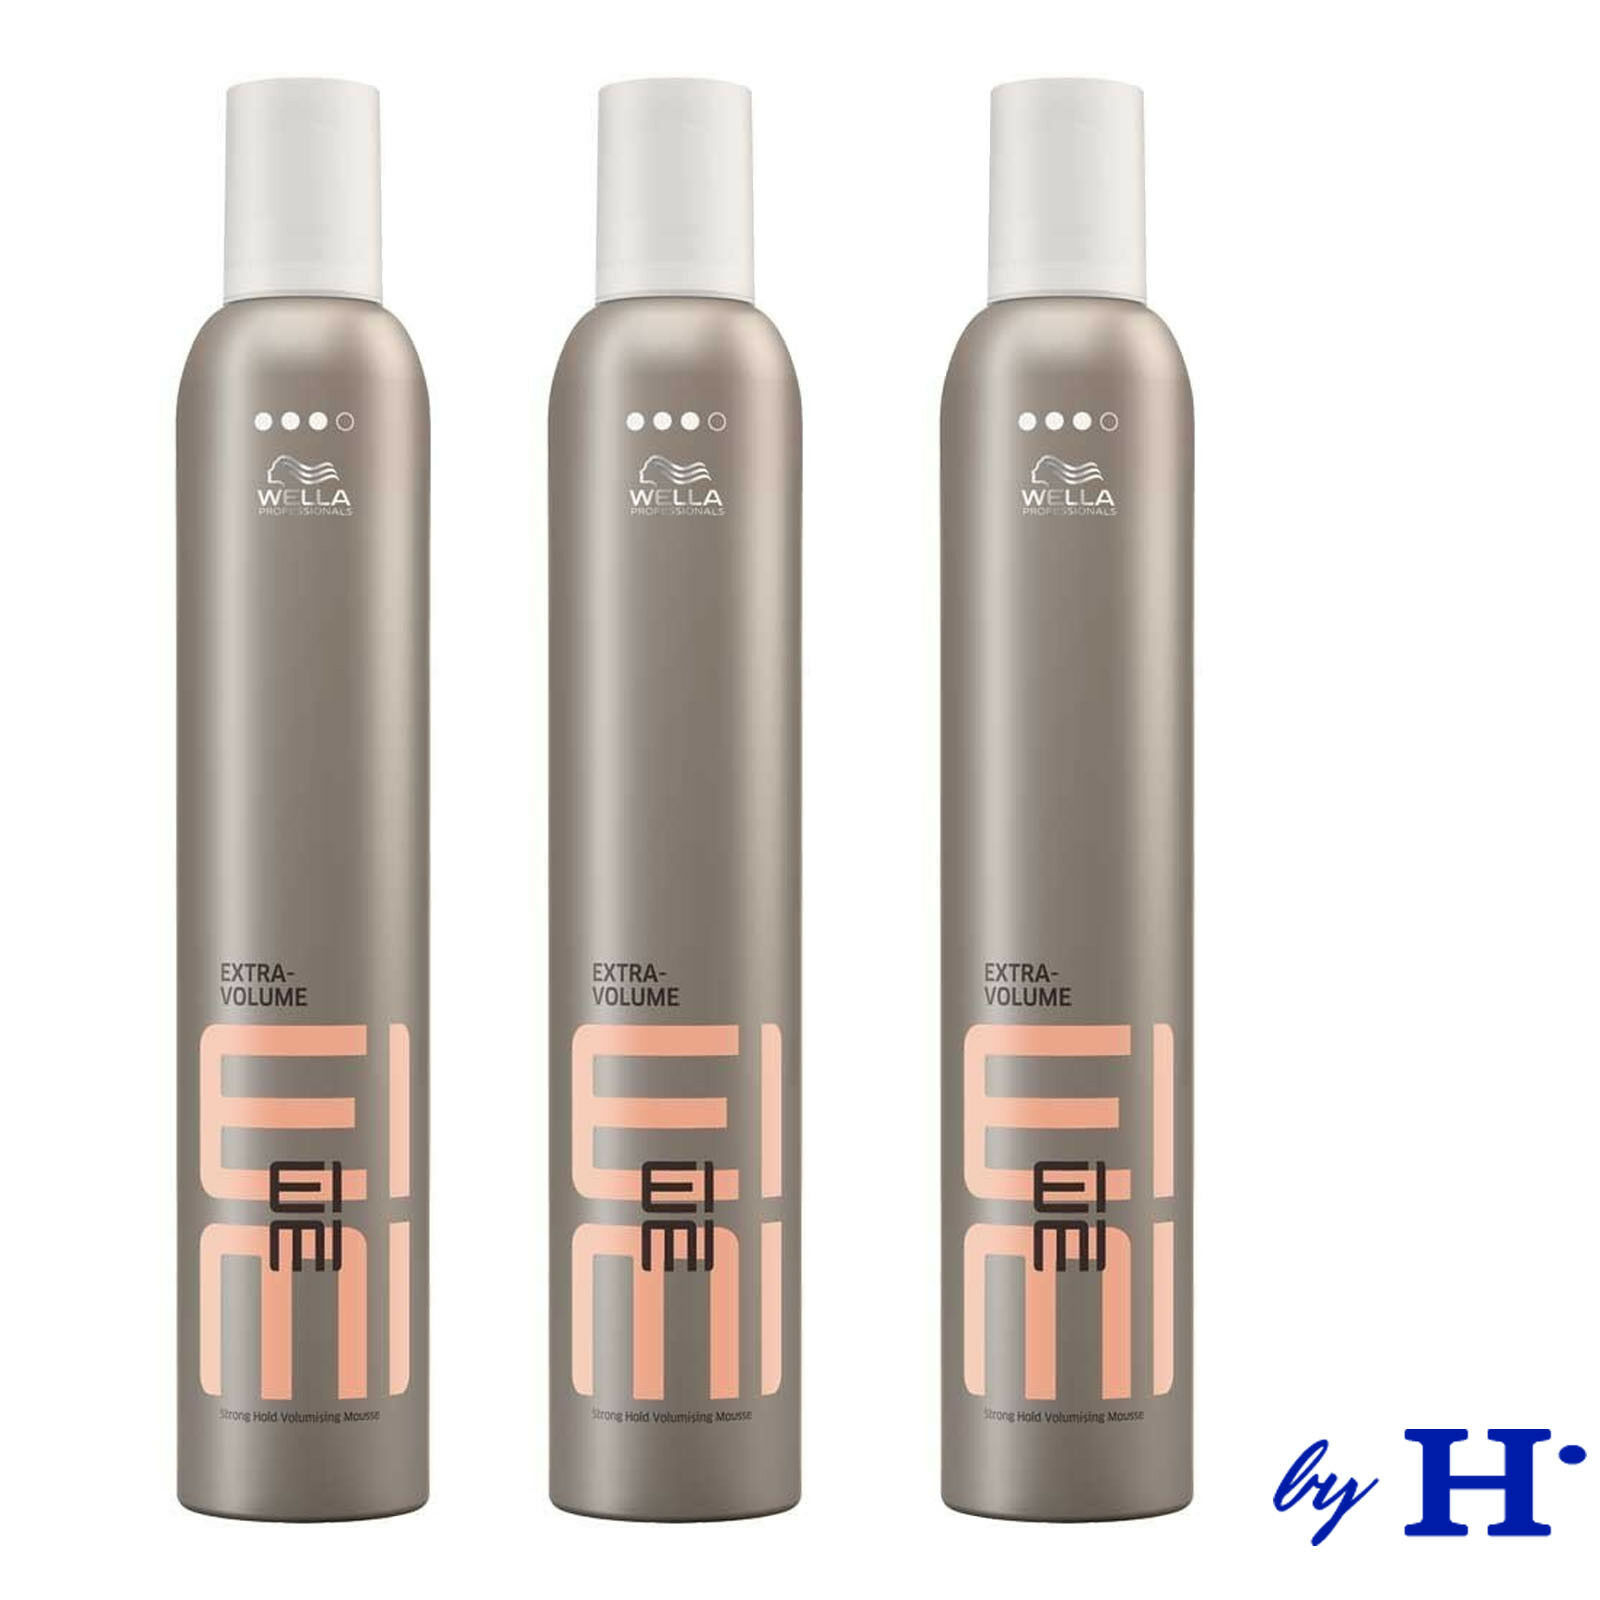 Wella EIMI Extra Volume Fönschaum Mousse Volumen Schaum starker Halt 3 x 500 ml